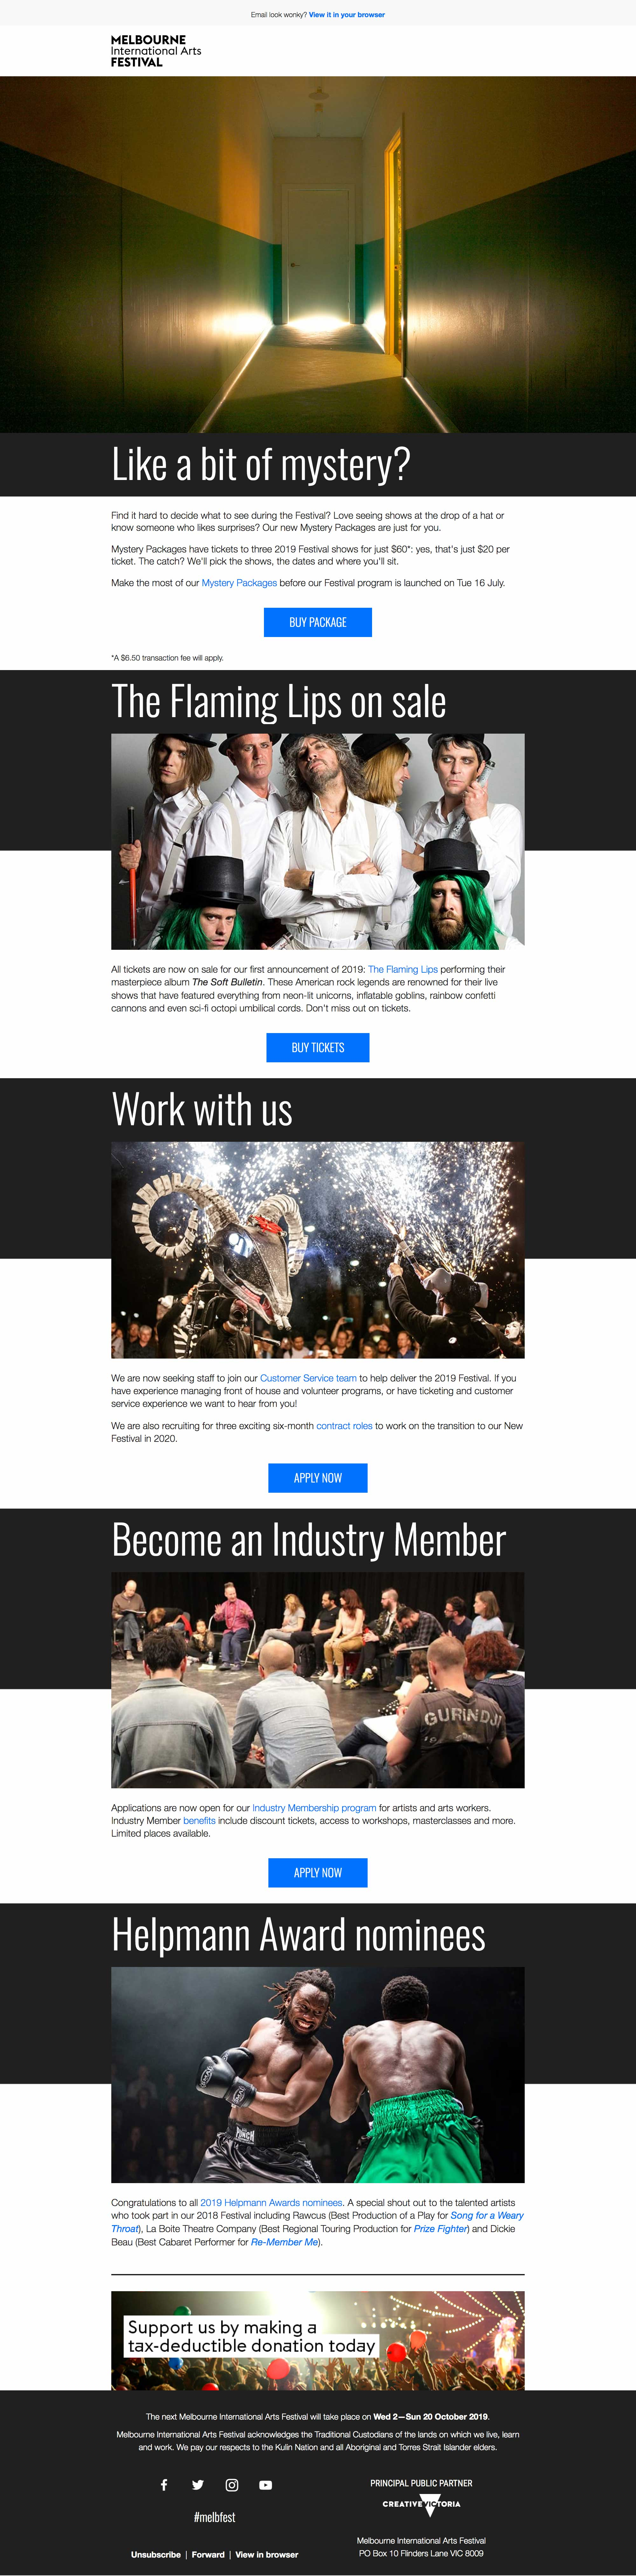 Mystery Packages, jobs, Industry Membership and more - desktop view